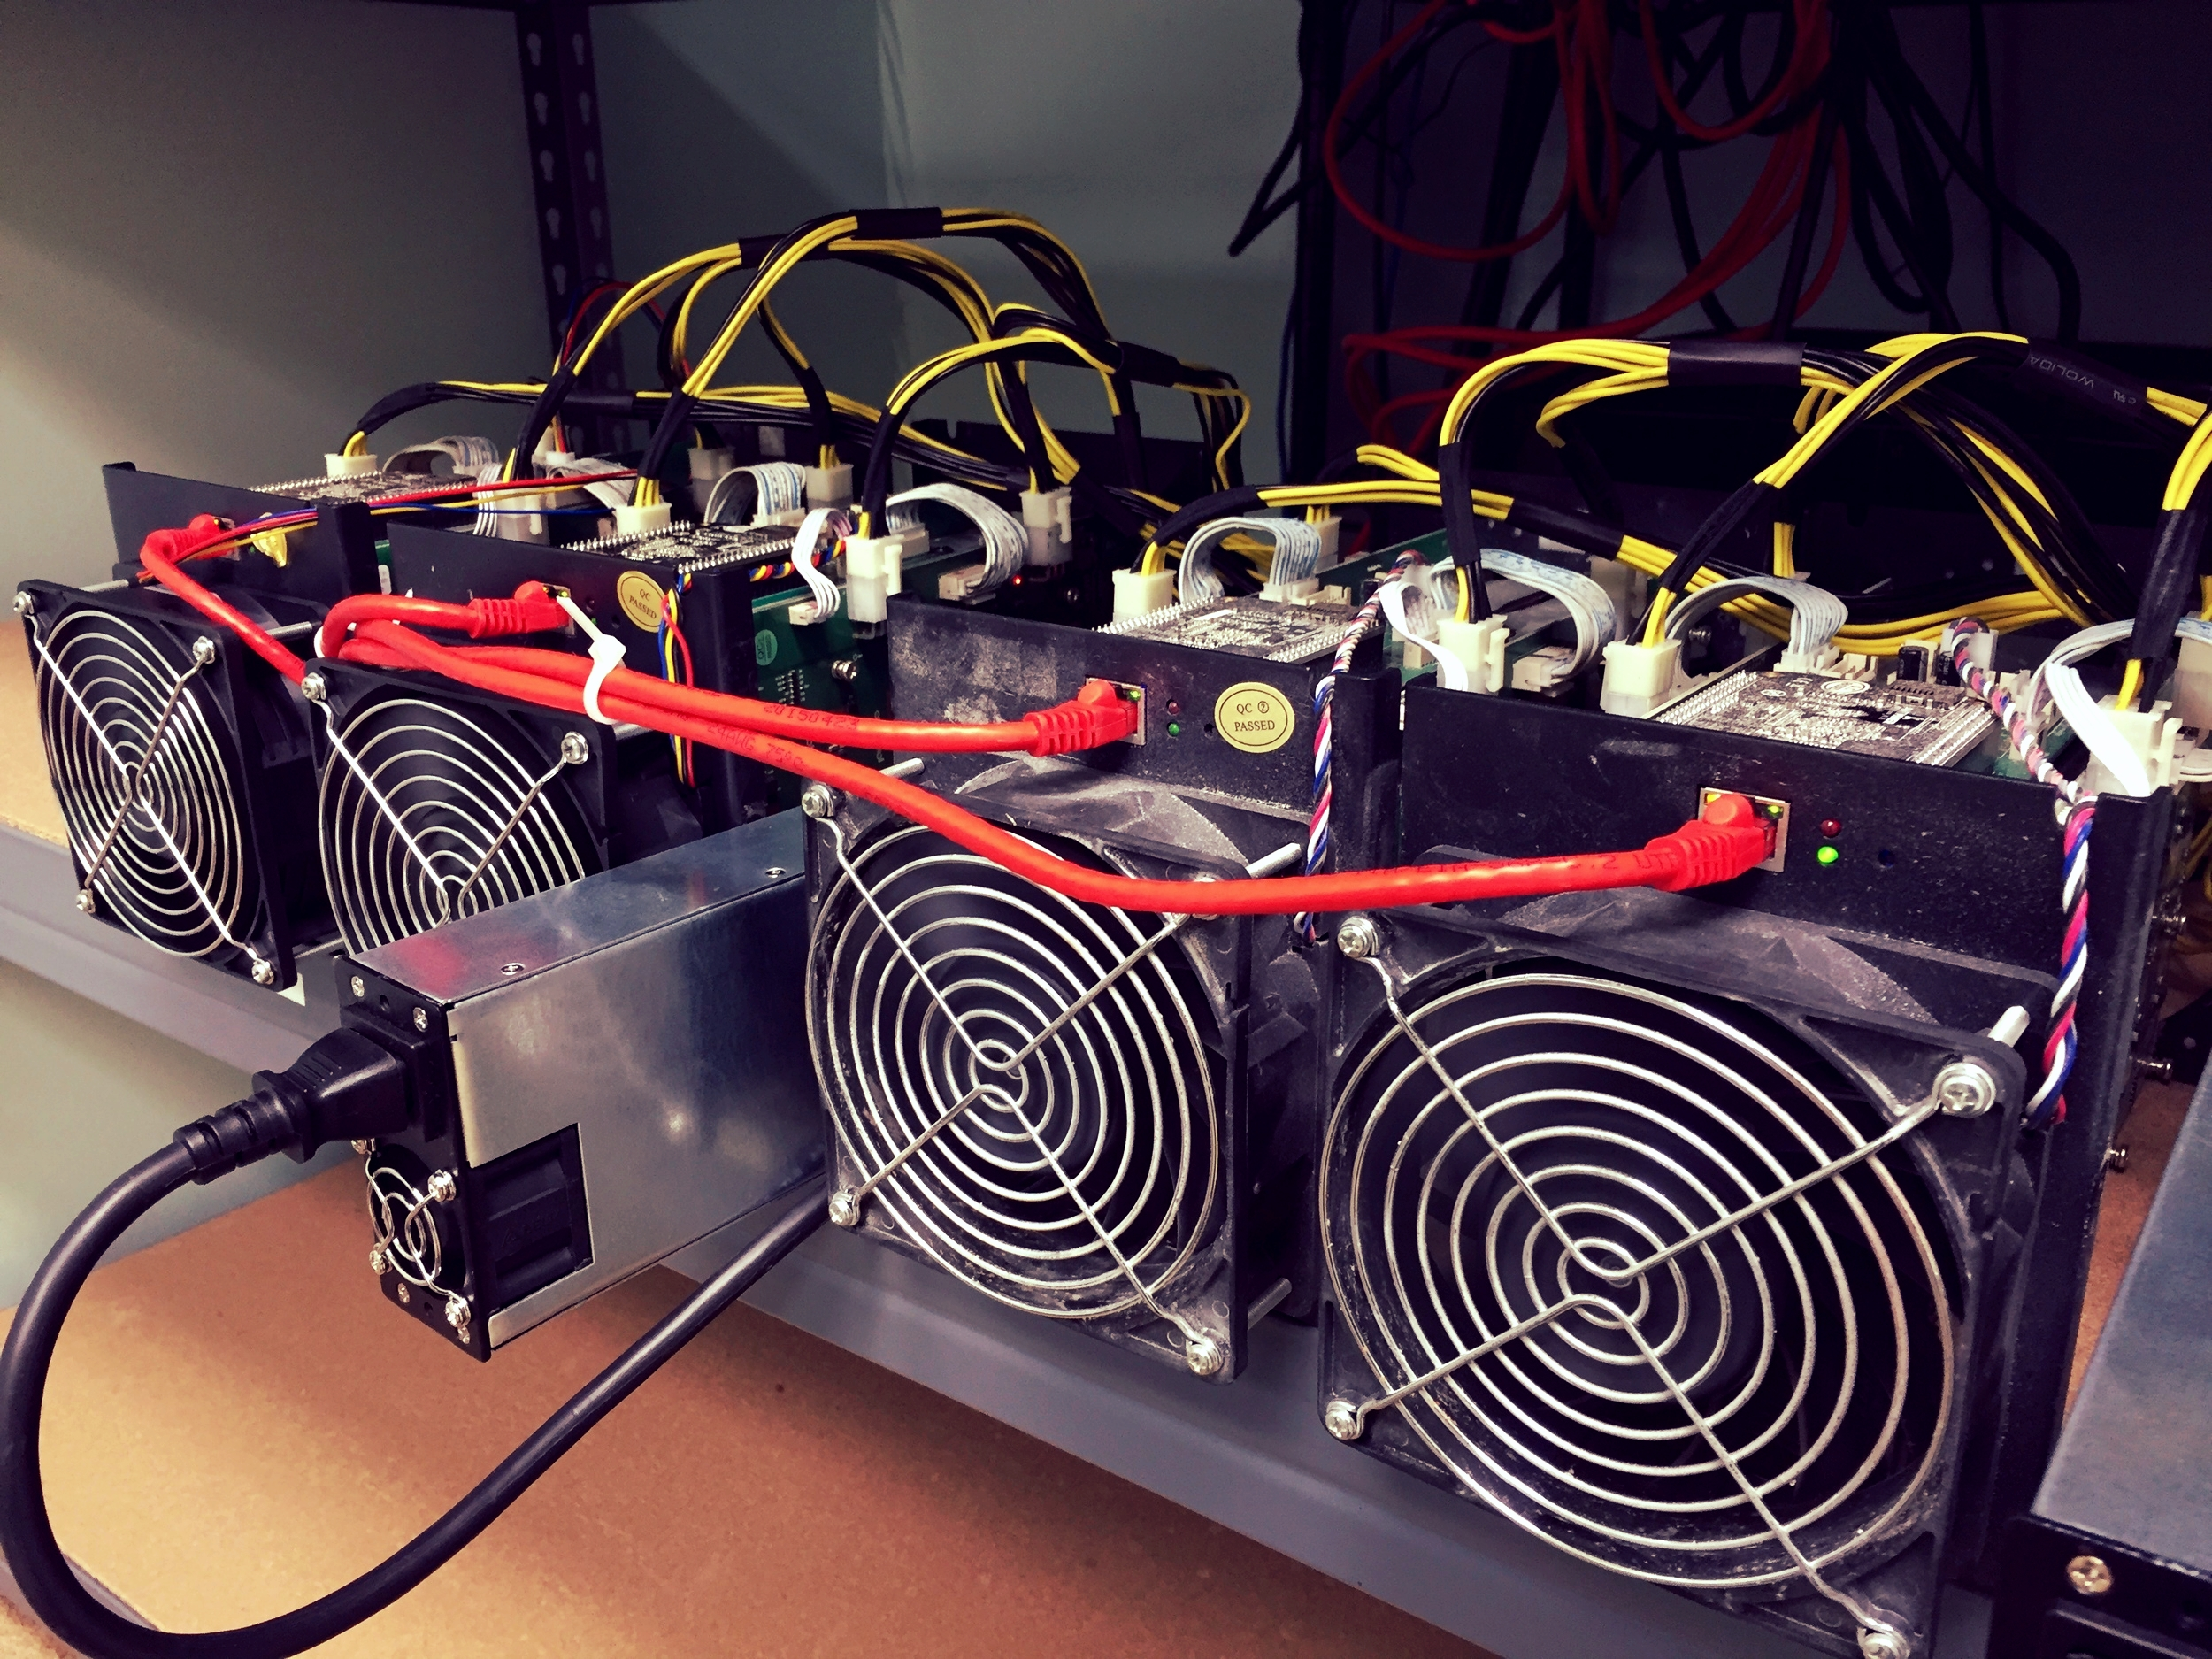 The new Antminer S5's